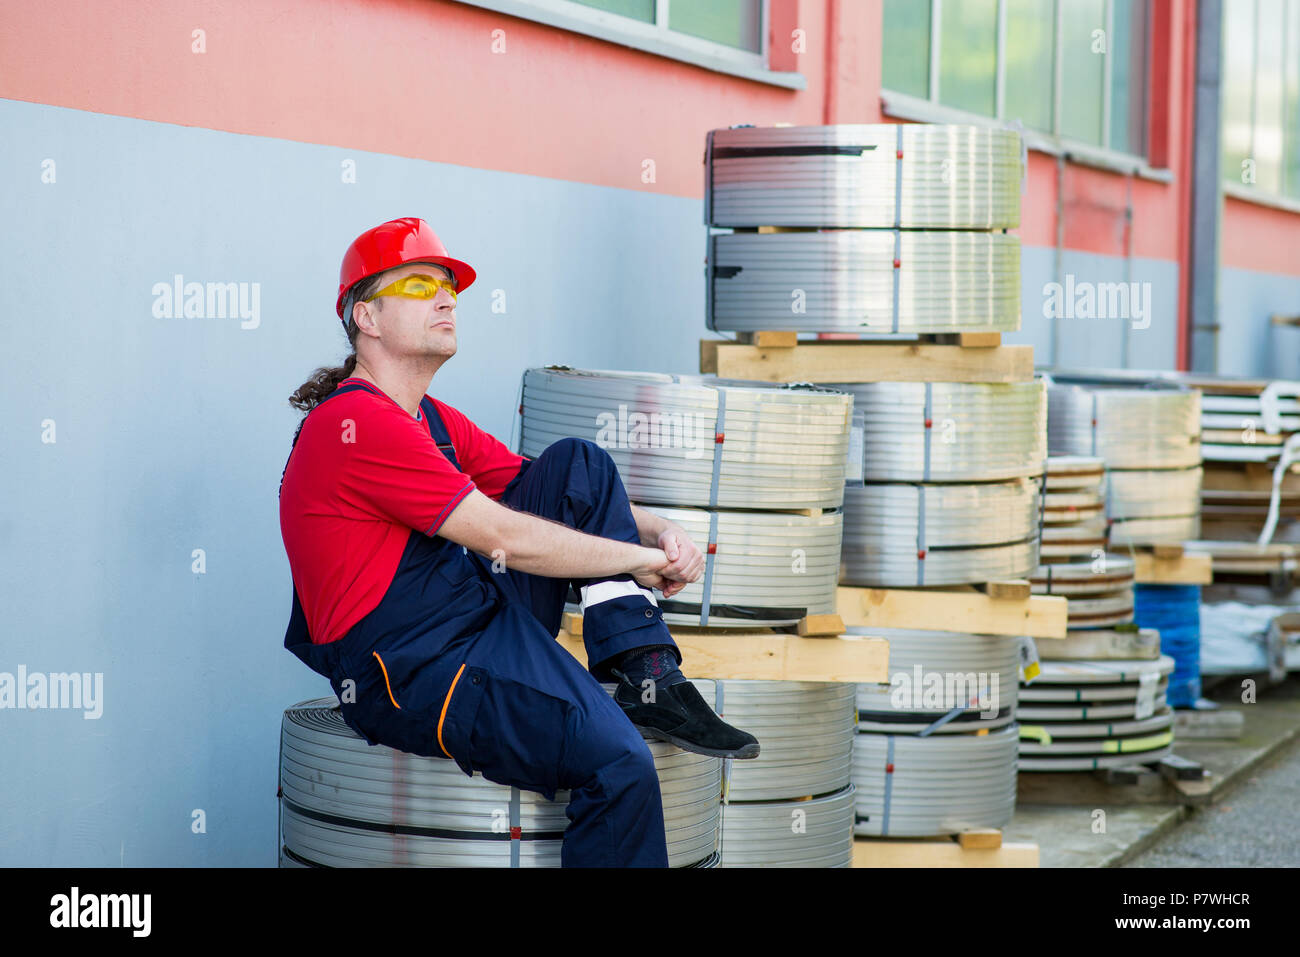 Factory worker with red helmet resting outside a factory - Stock Image